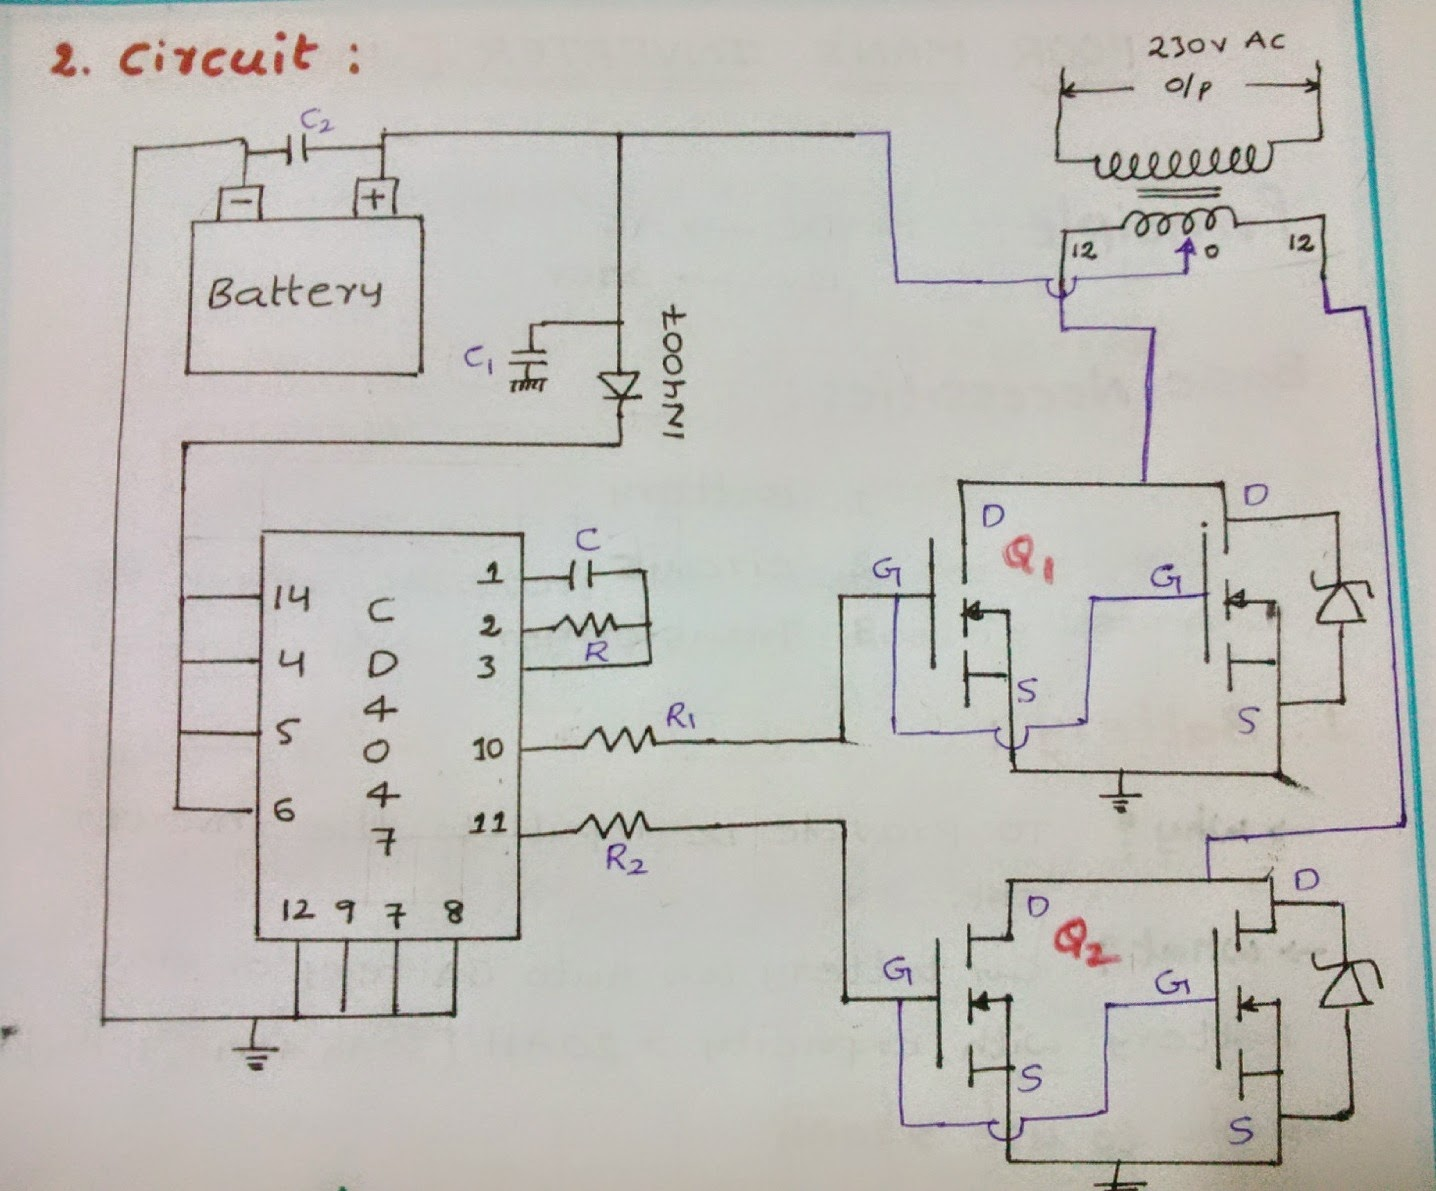 Simple Poor Mans Inverter 100 150 Watts Diagram Lm339n Circuit Atx Power Supply Schematic Pc